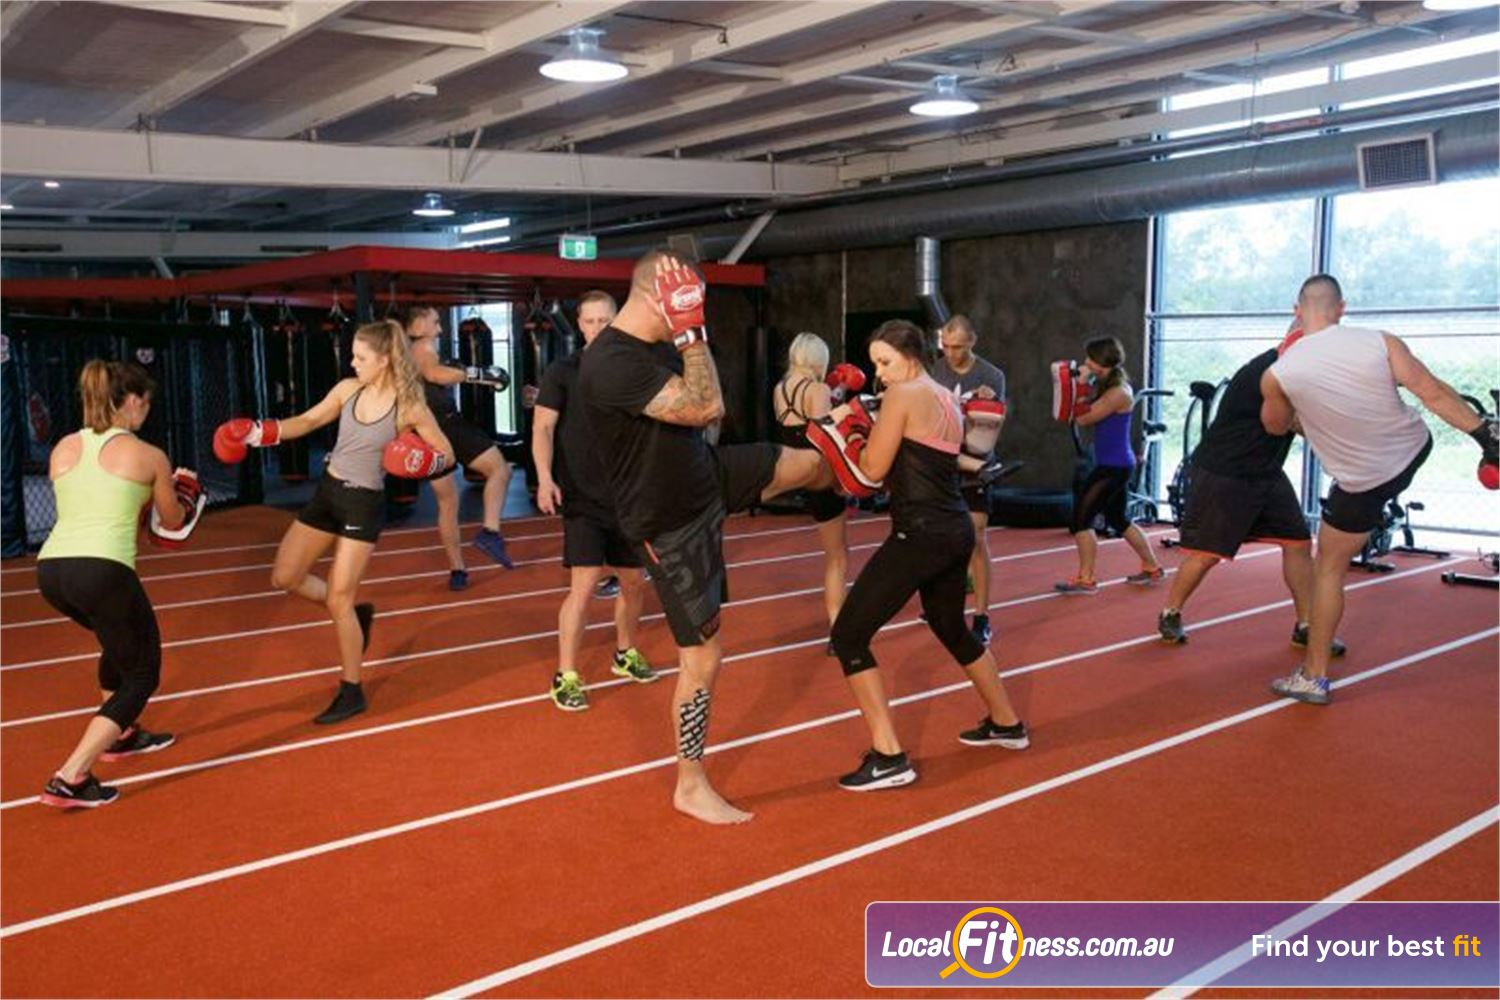 Goodlife Health Clubs Near Shailer Park Springwood Arena Fitness MMA - classes inspired by MMA and Boxing.